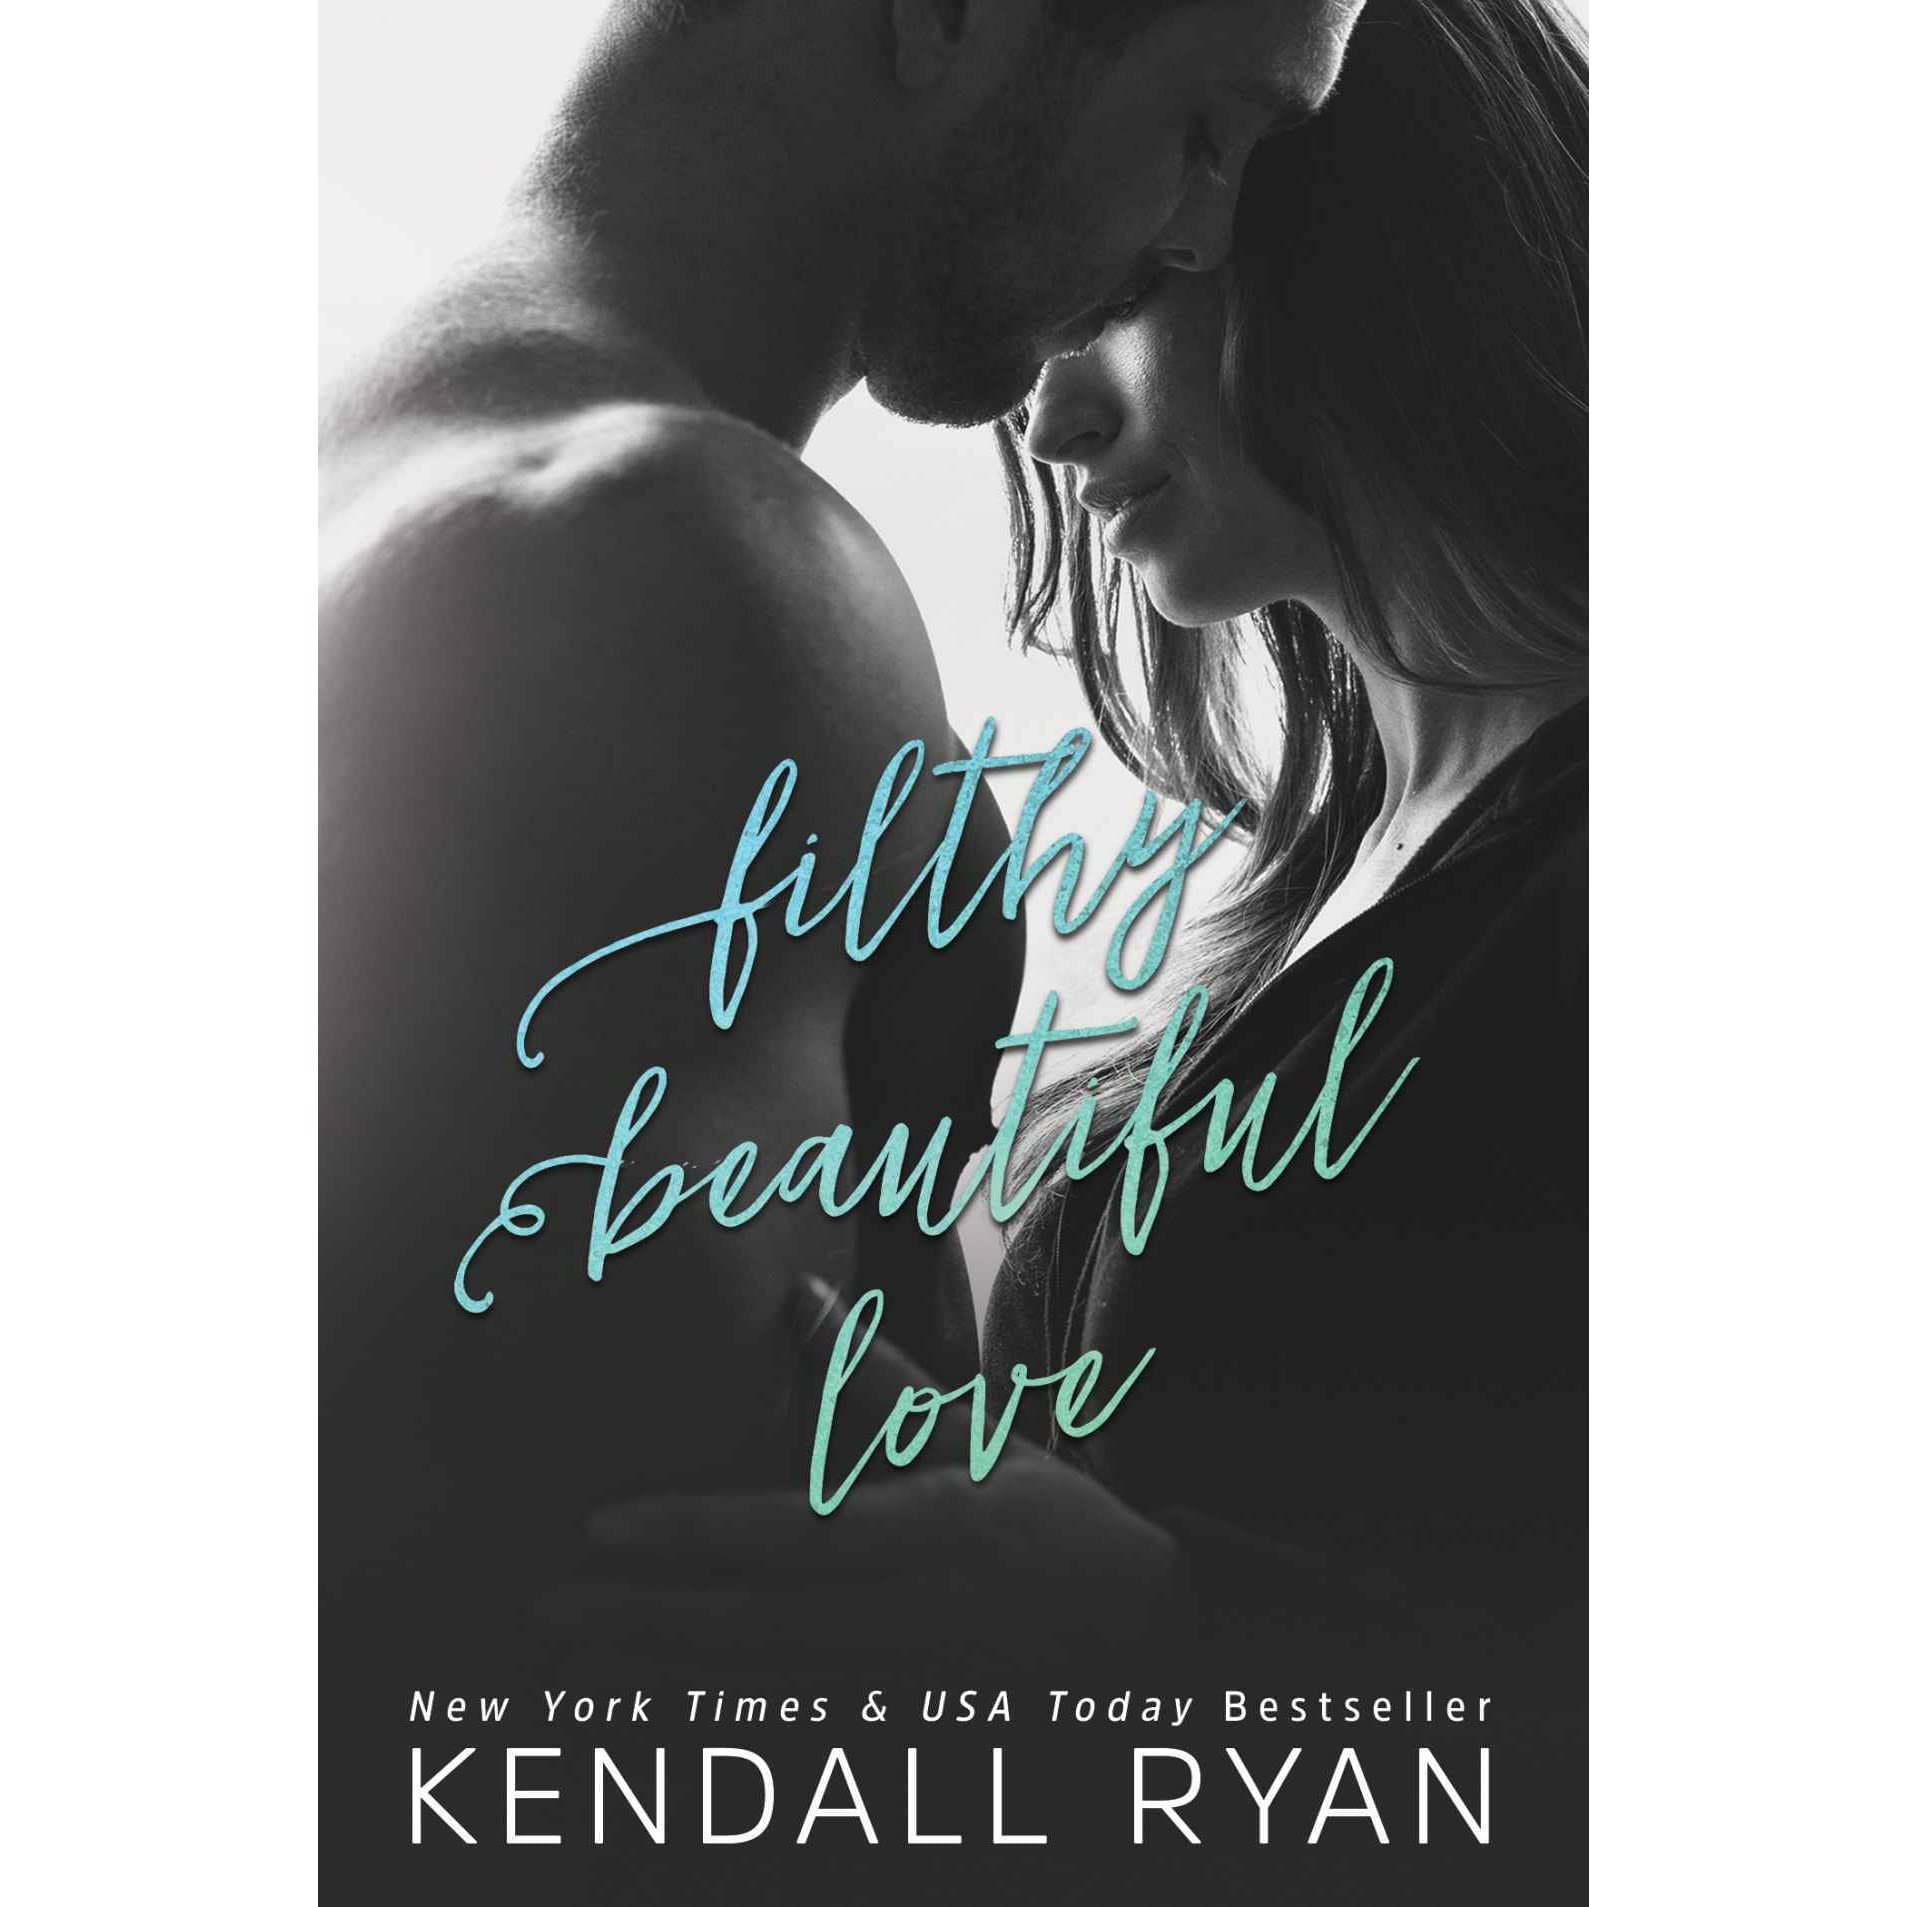 Kendall Ryan Libros Filthy Beautiful Love Filthy Beautiful Lies 2 By Kendall Ryan